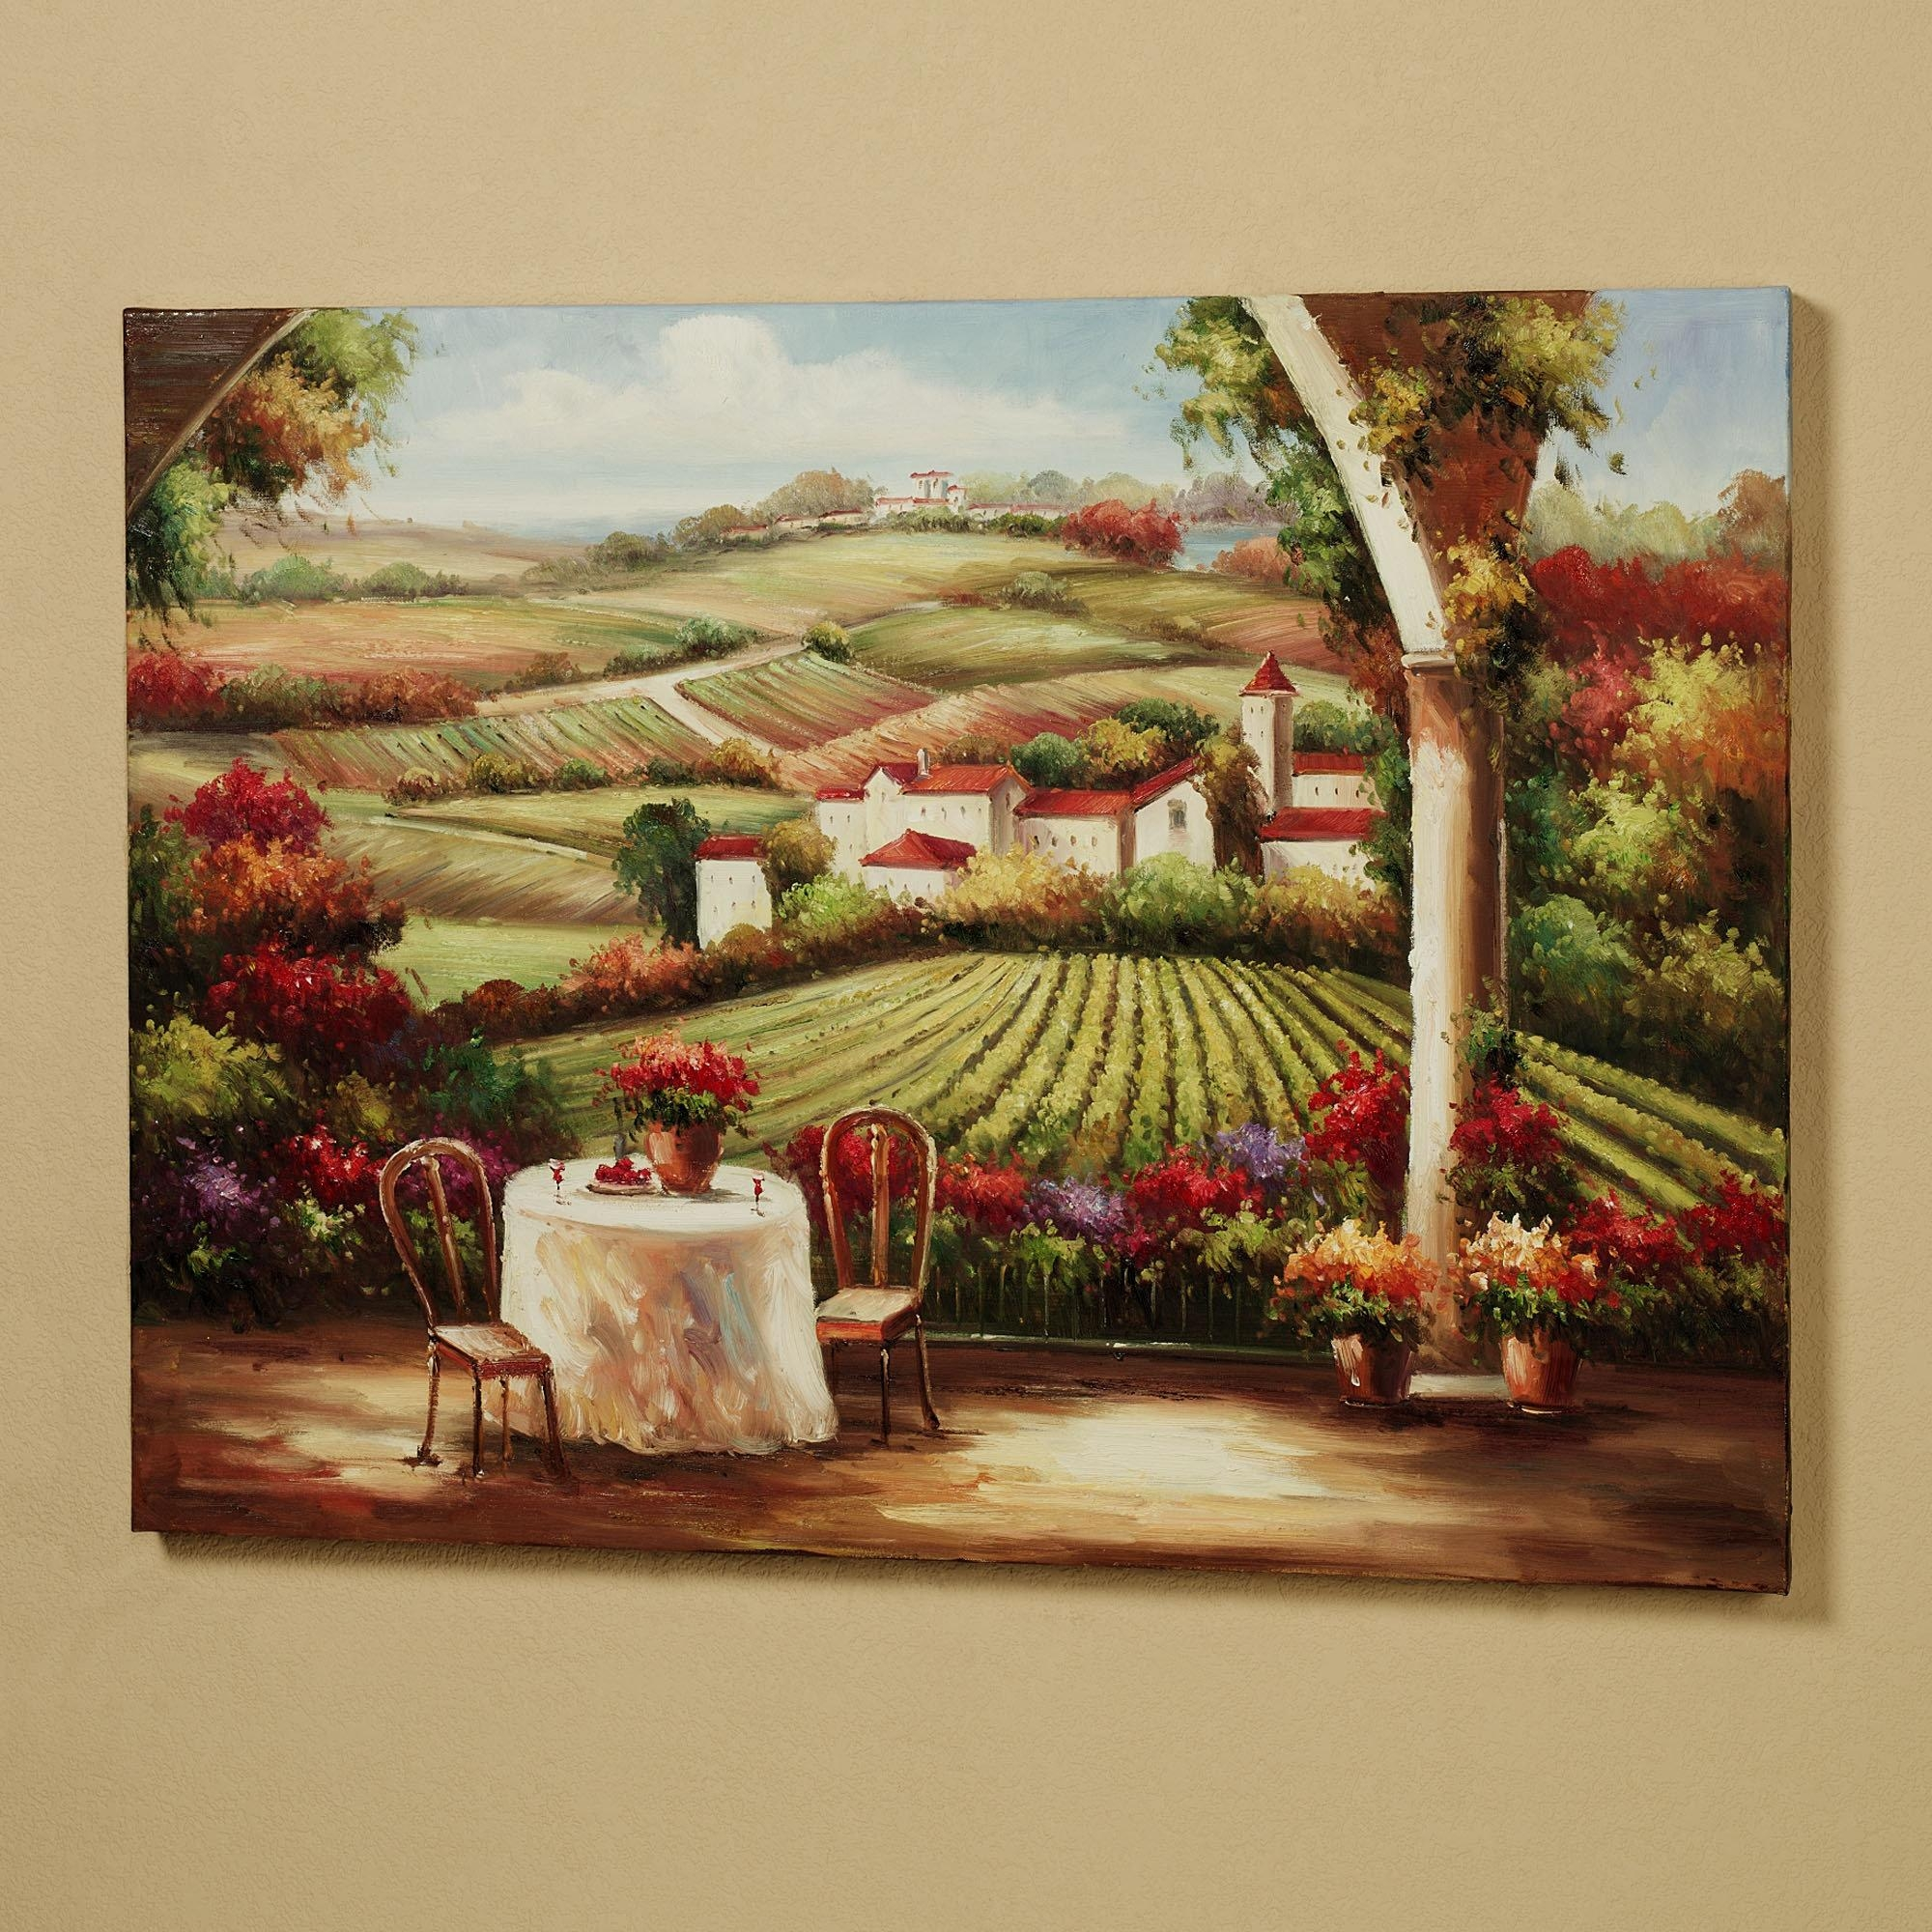 Wall Art Designs: Terrific Vineyard Wall Art Wine Decor Kitchen Inside Vineyard Wall Art (View 1 of 20)